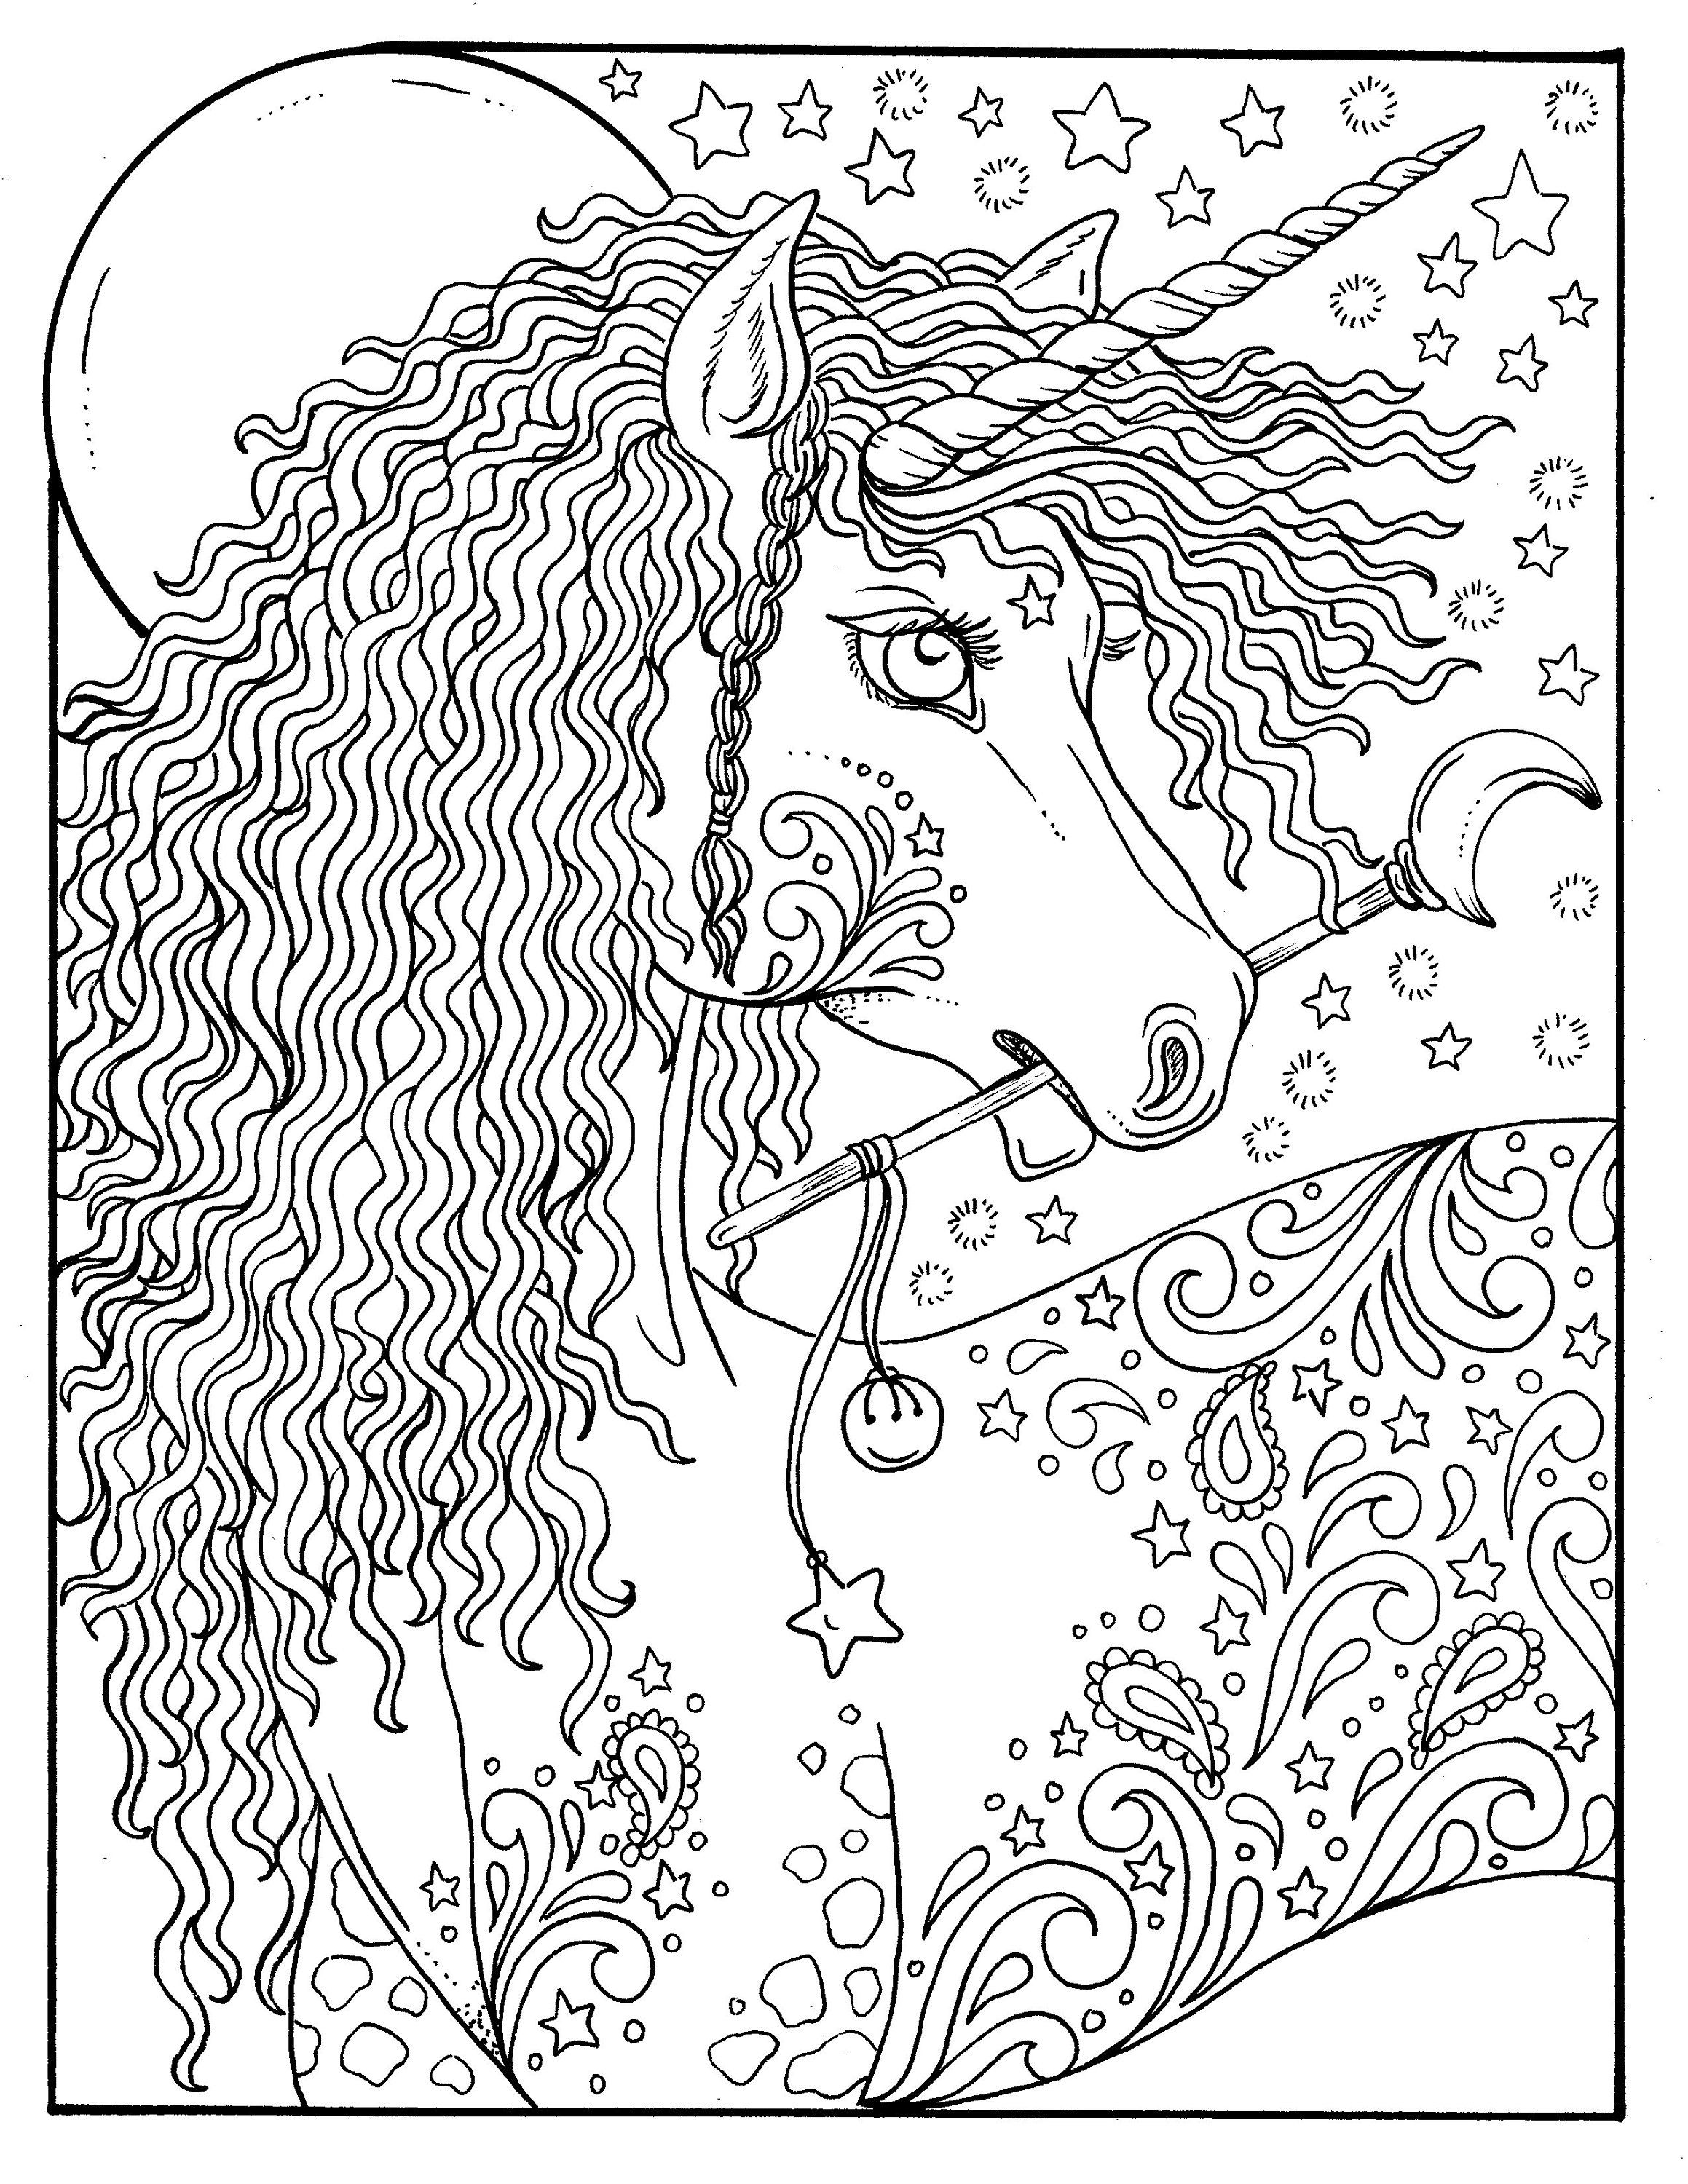 Digital Coloring Book Unicorn Dreams Magical Fantasy Etsy Unicorn Coloring Pages Coloring Pages Horse Coloring Pages